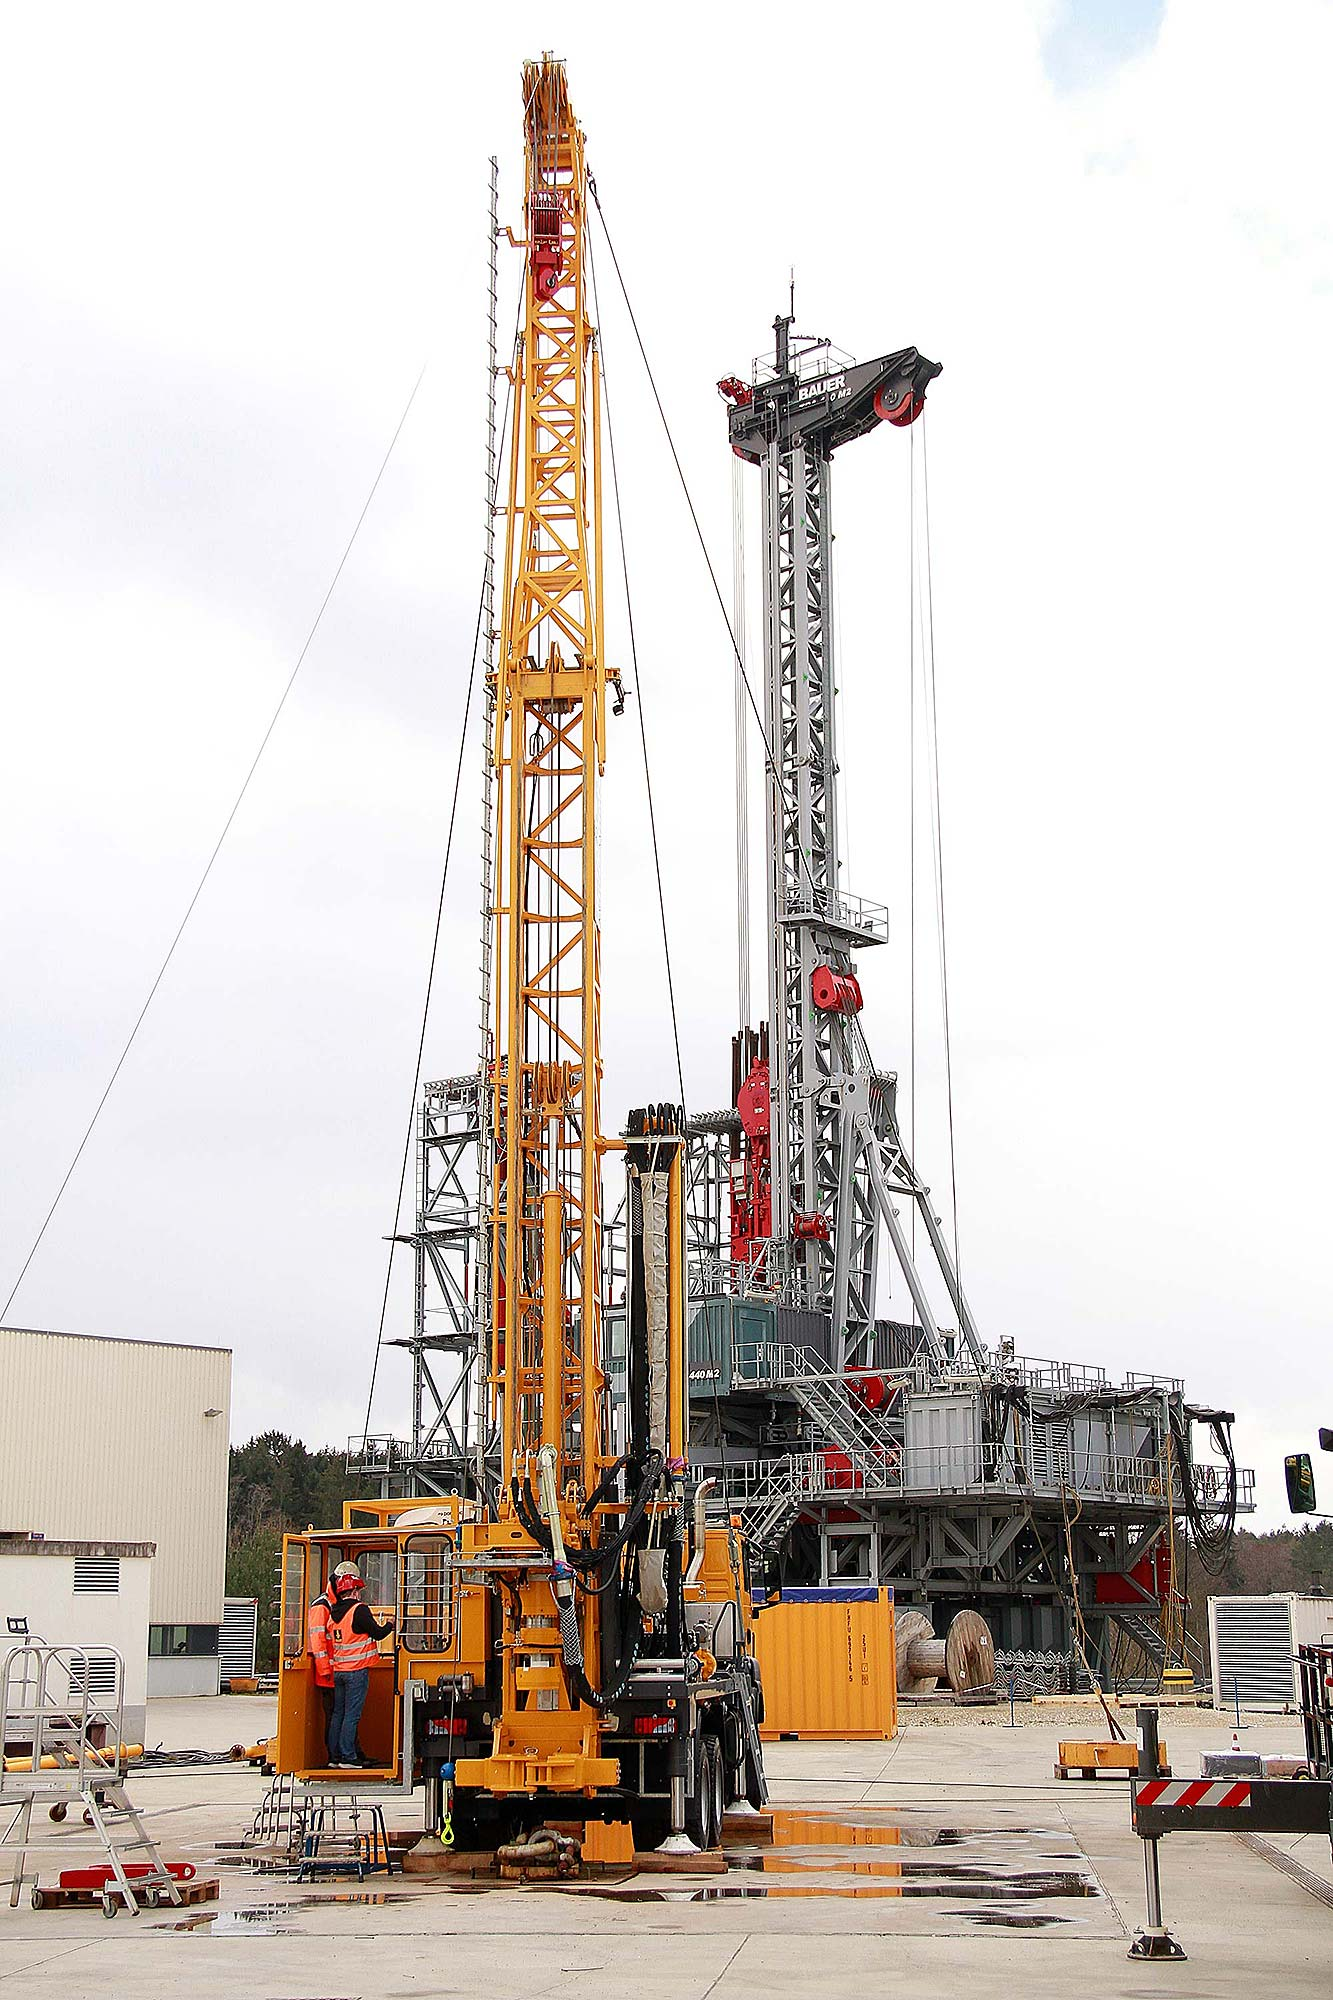 Purchase of another new PRAKLA RB 50 rotary drilling rig